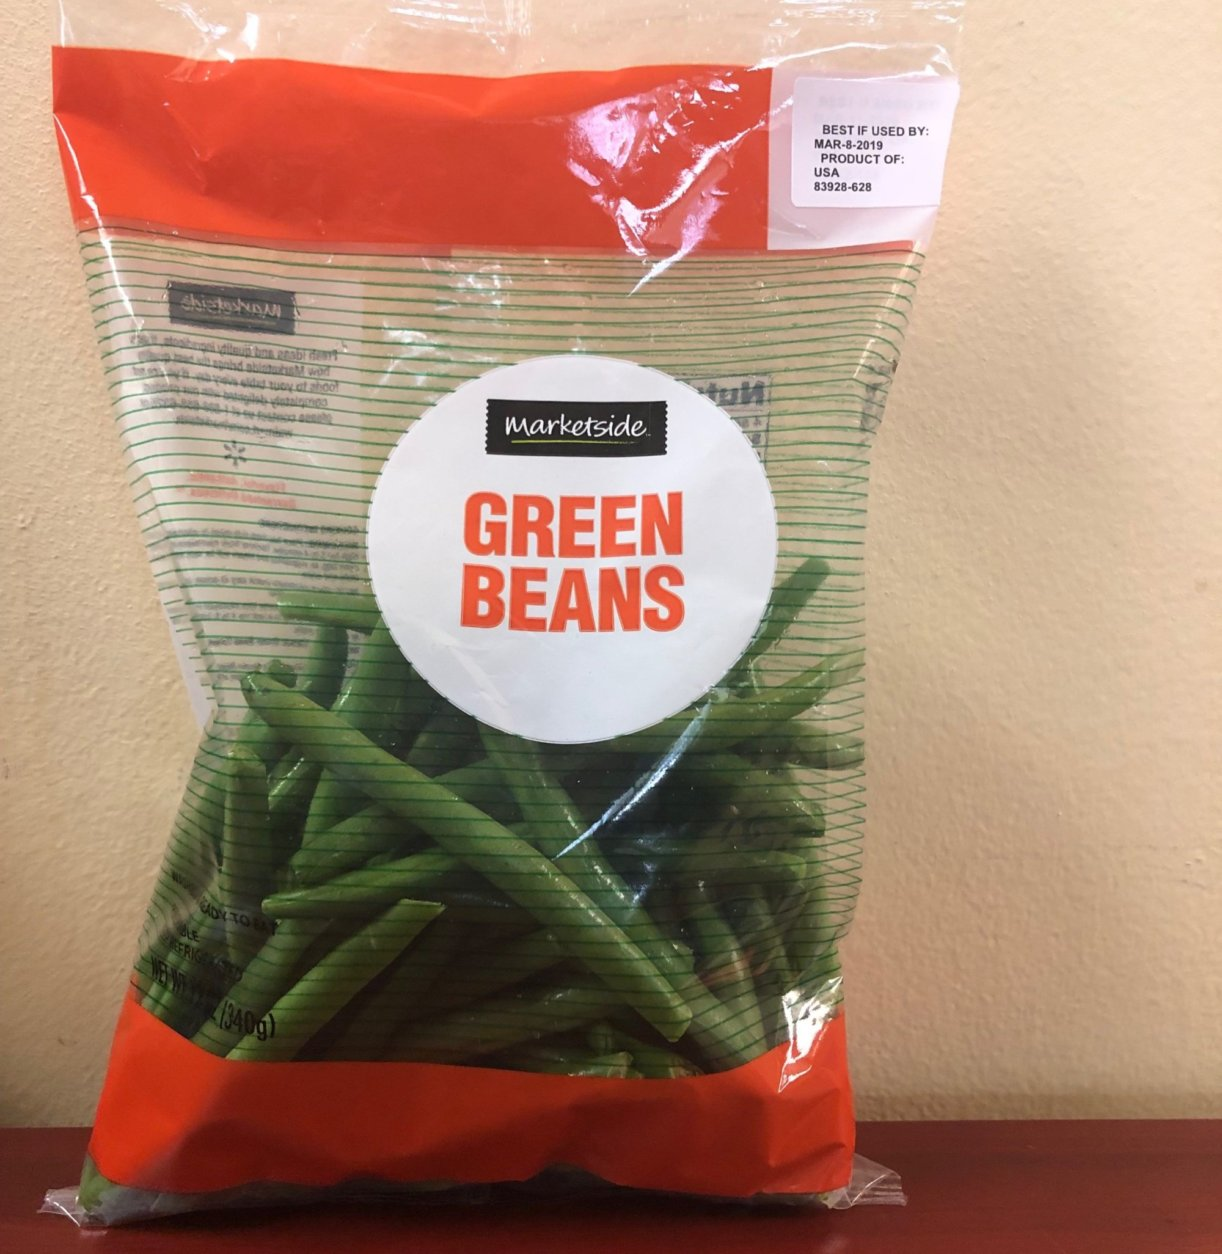 Marketside brand bagged green beans, 12 ounces (Courtesy Southern Specialties)